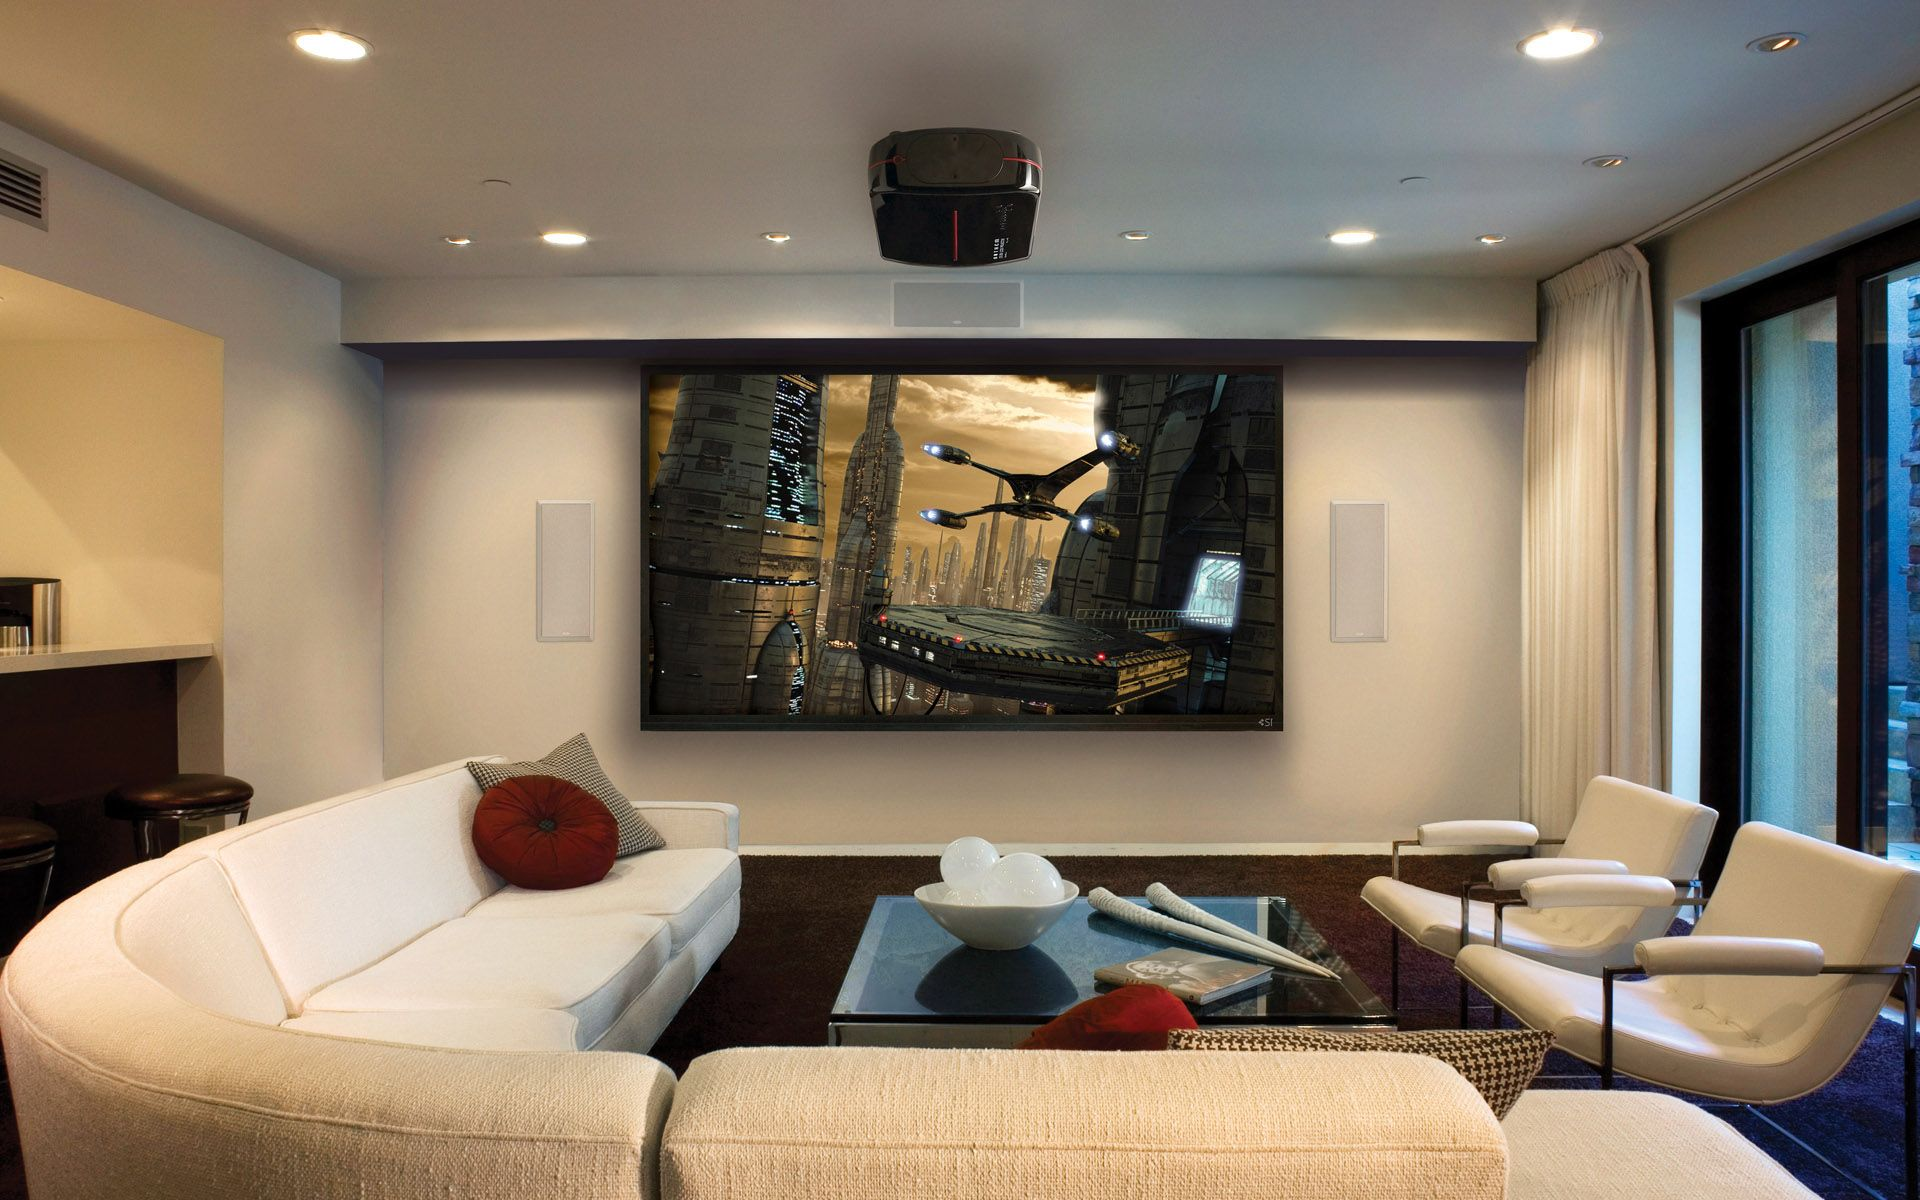 wonderful home theater layout design with white sectional sofa gray cushions white armchairs and glass table cool projector ceiling lights big screen with